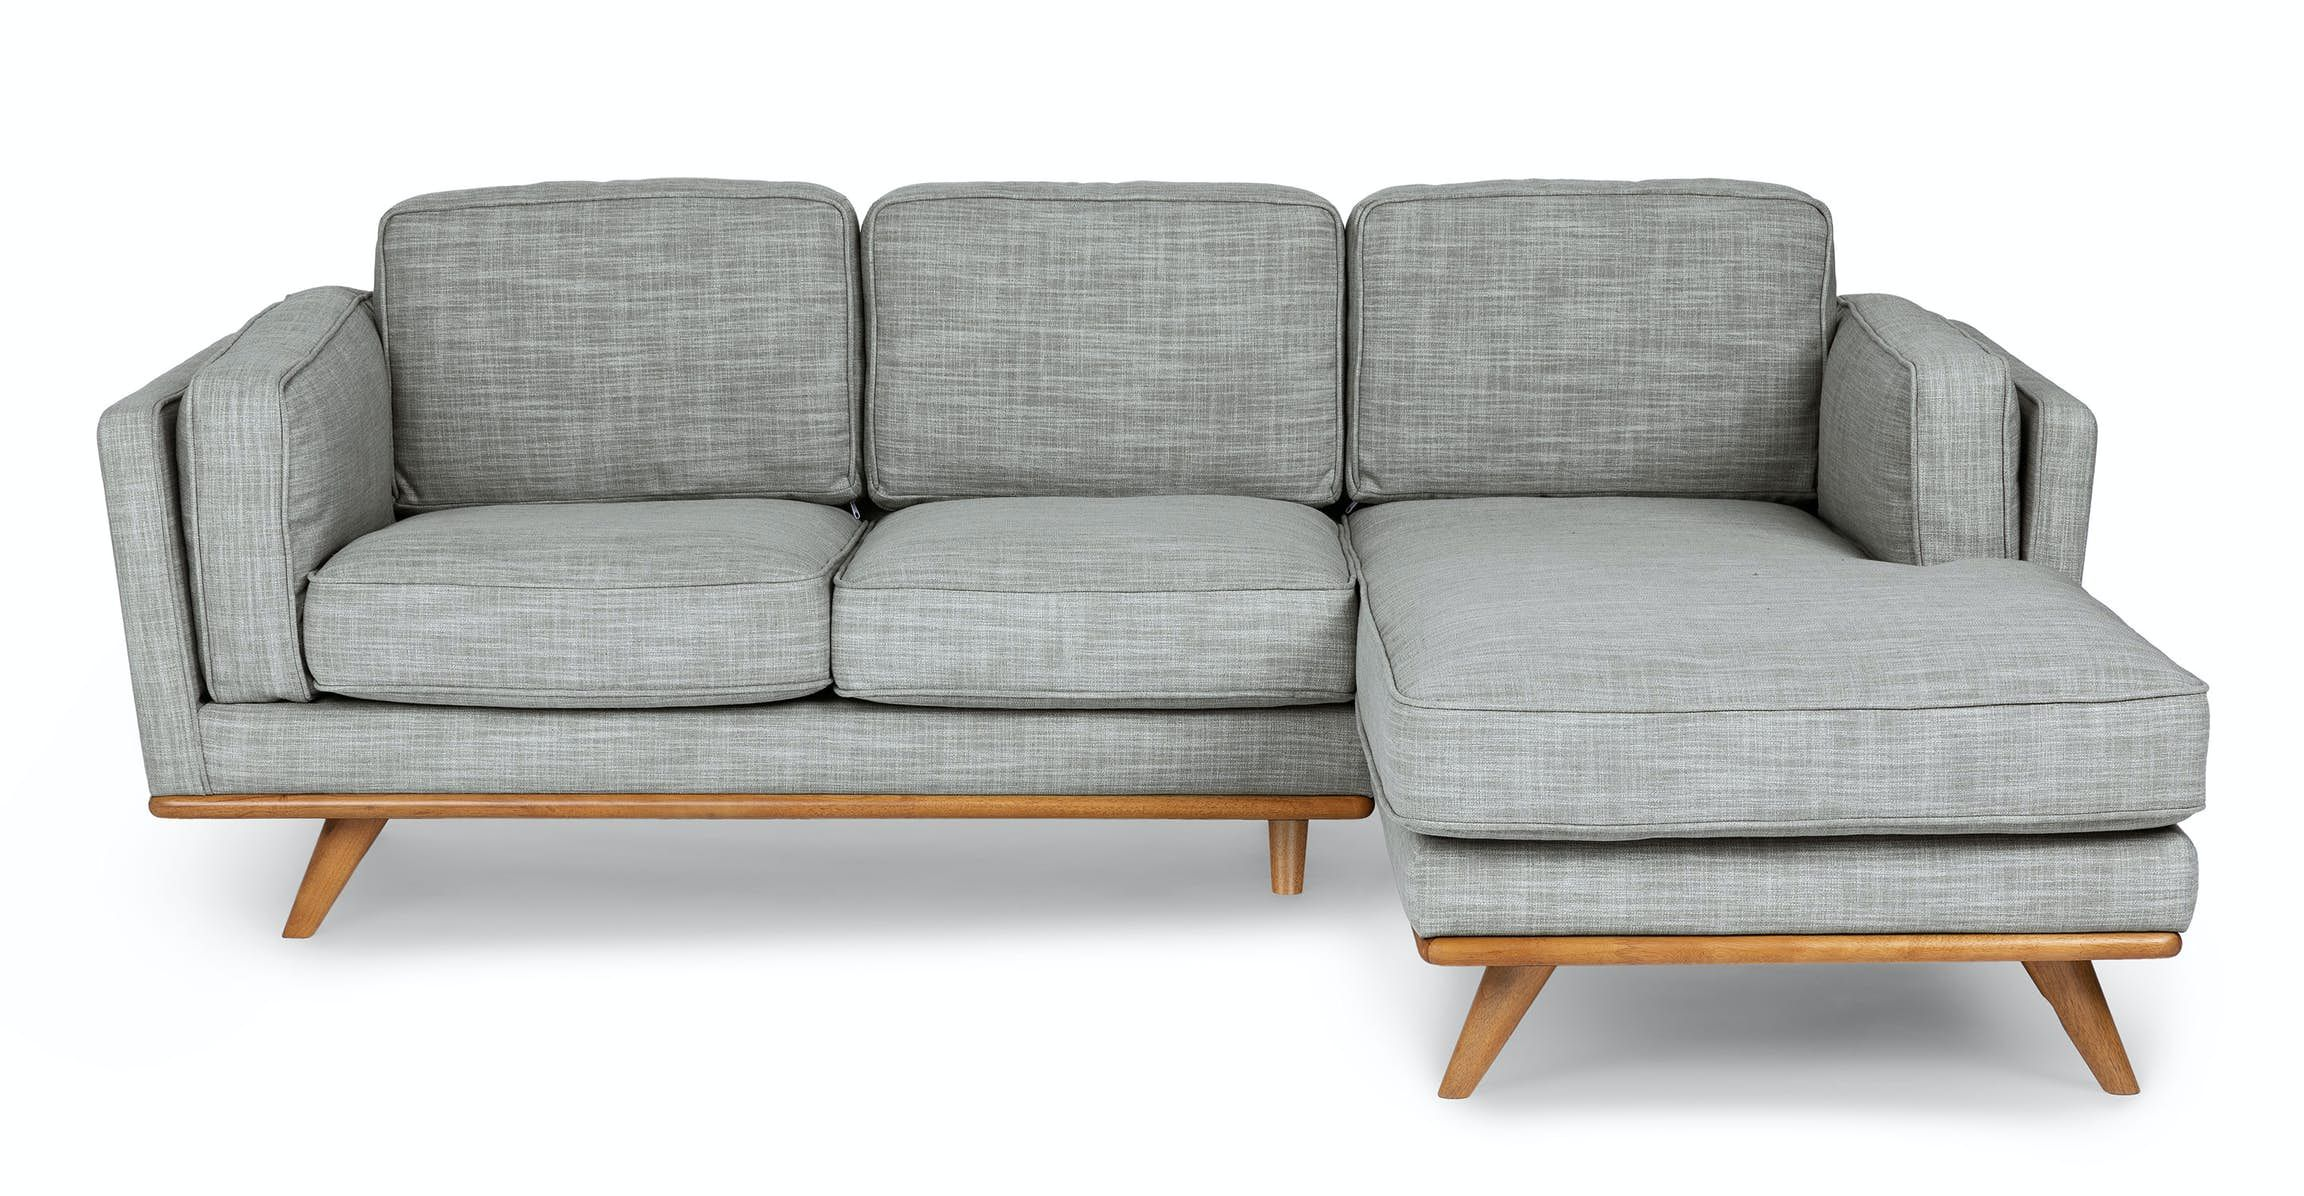 Timber Oxford Tan Corner Sectional Sectionals Article Modern Mid Century And Scandinavian Fur Sectional Scandinavian Design Living Room Corner Sectional